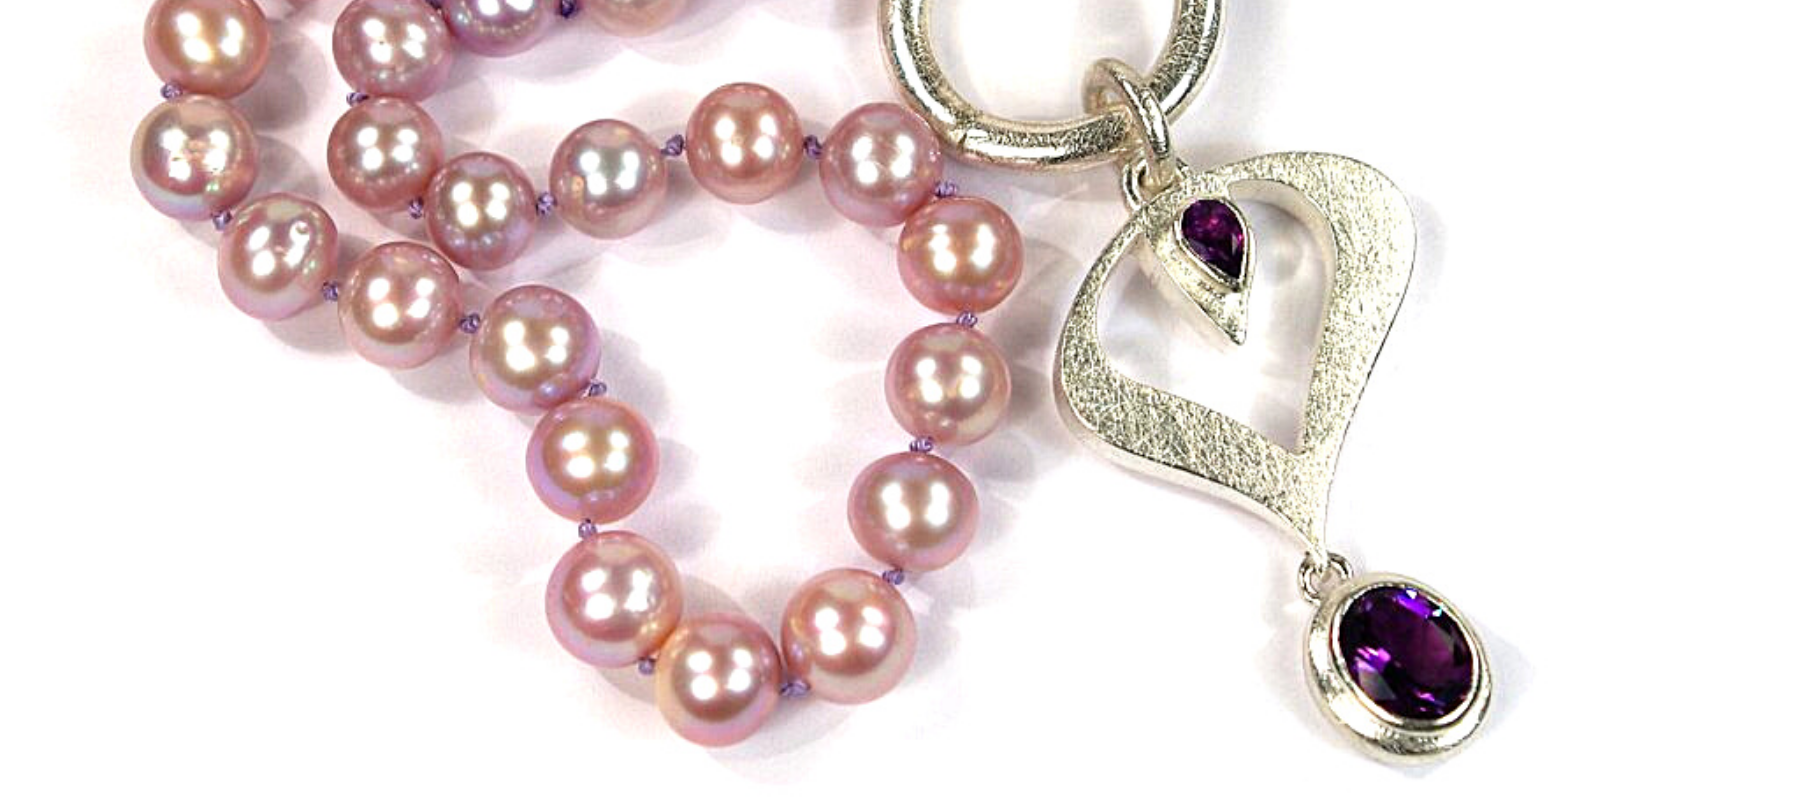 Wear Amethysts To Fall In Love Or Boost Creativity | Februarys Birthstone